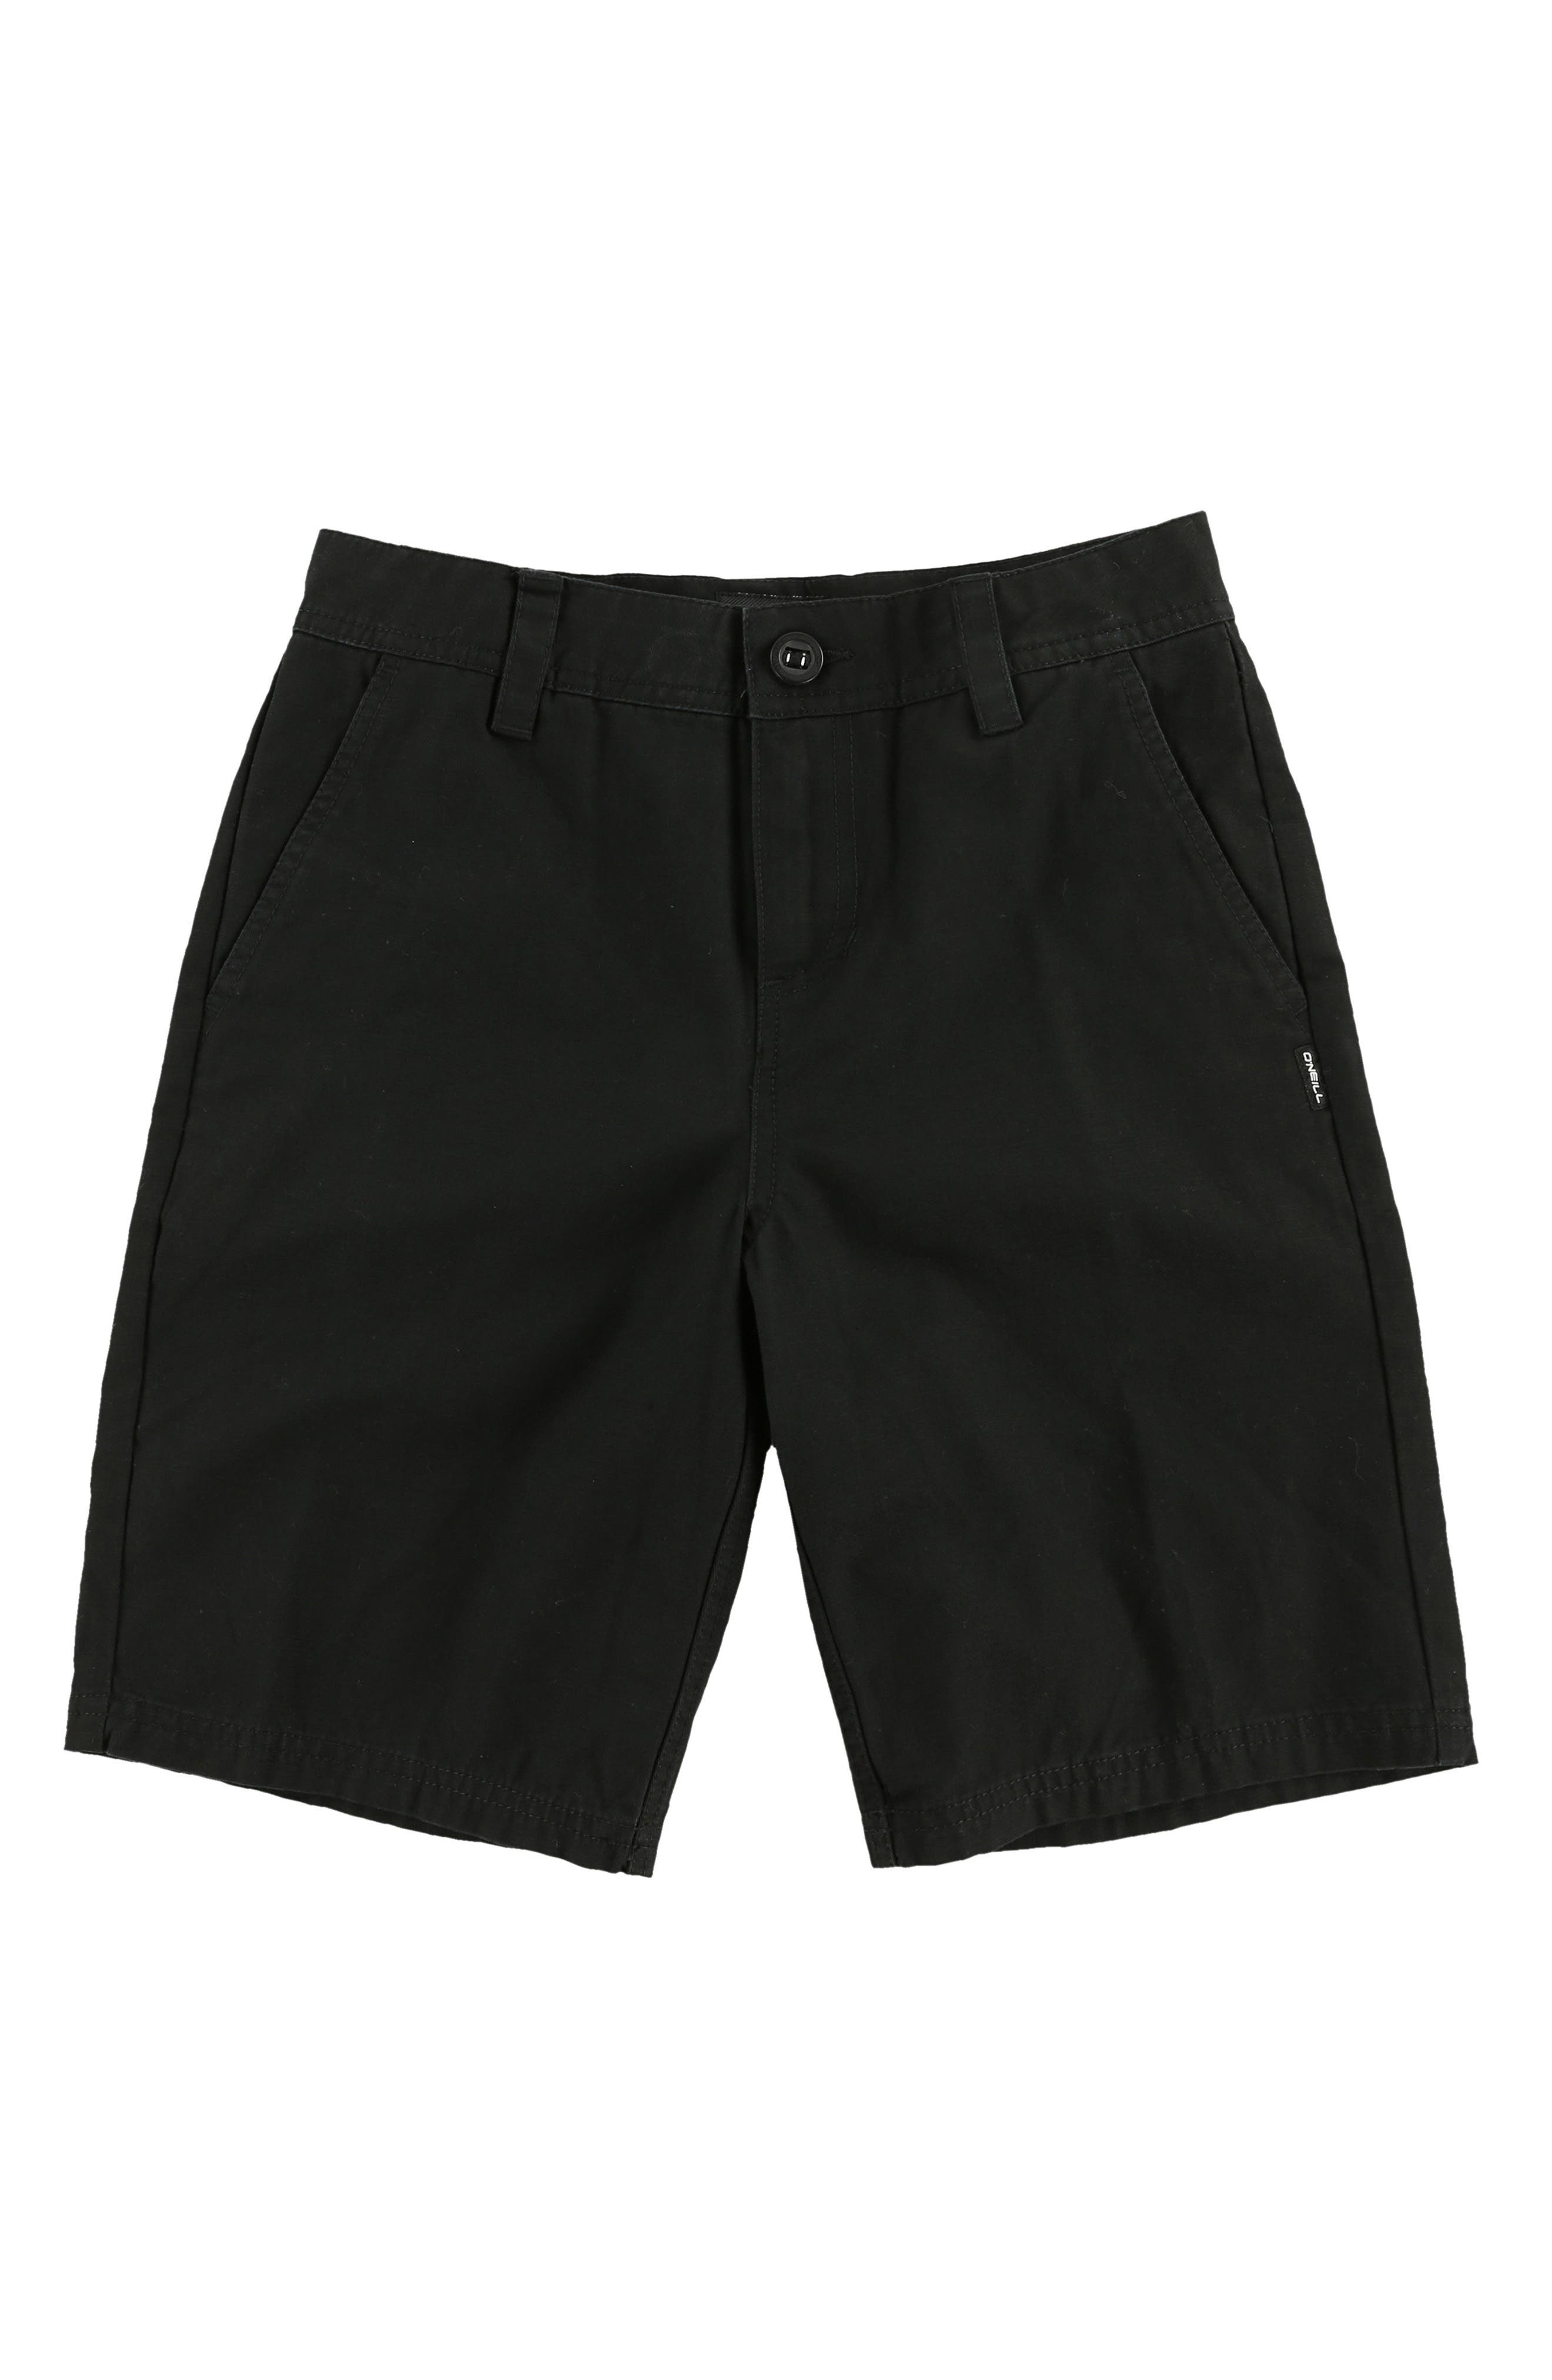 Jay Chino Shorts,                             Main thumbnail 1, color,                             001